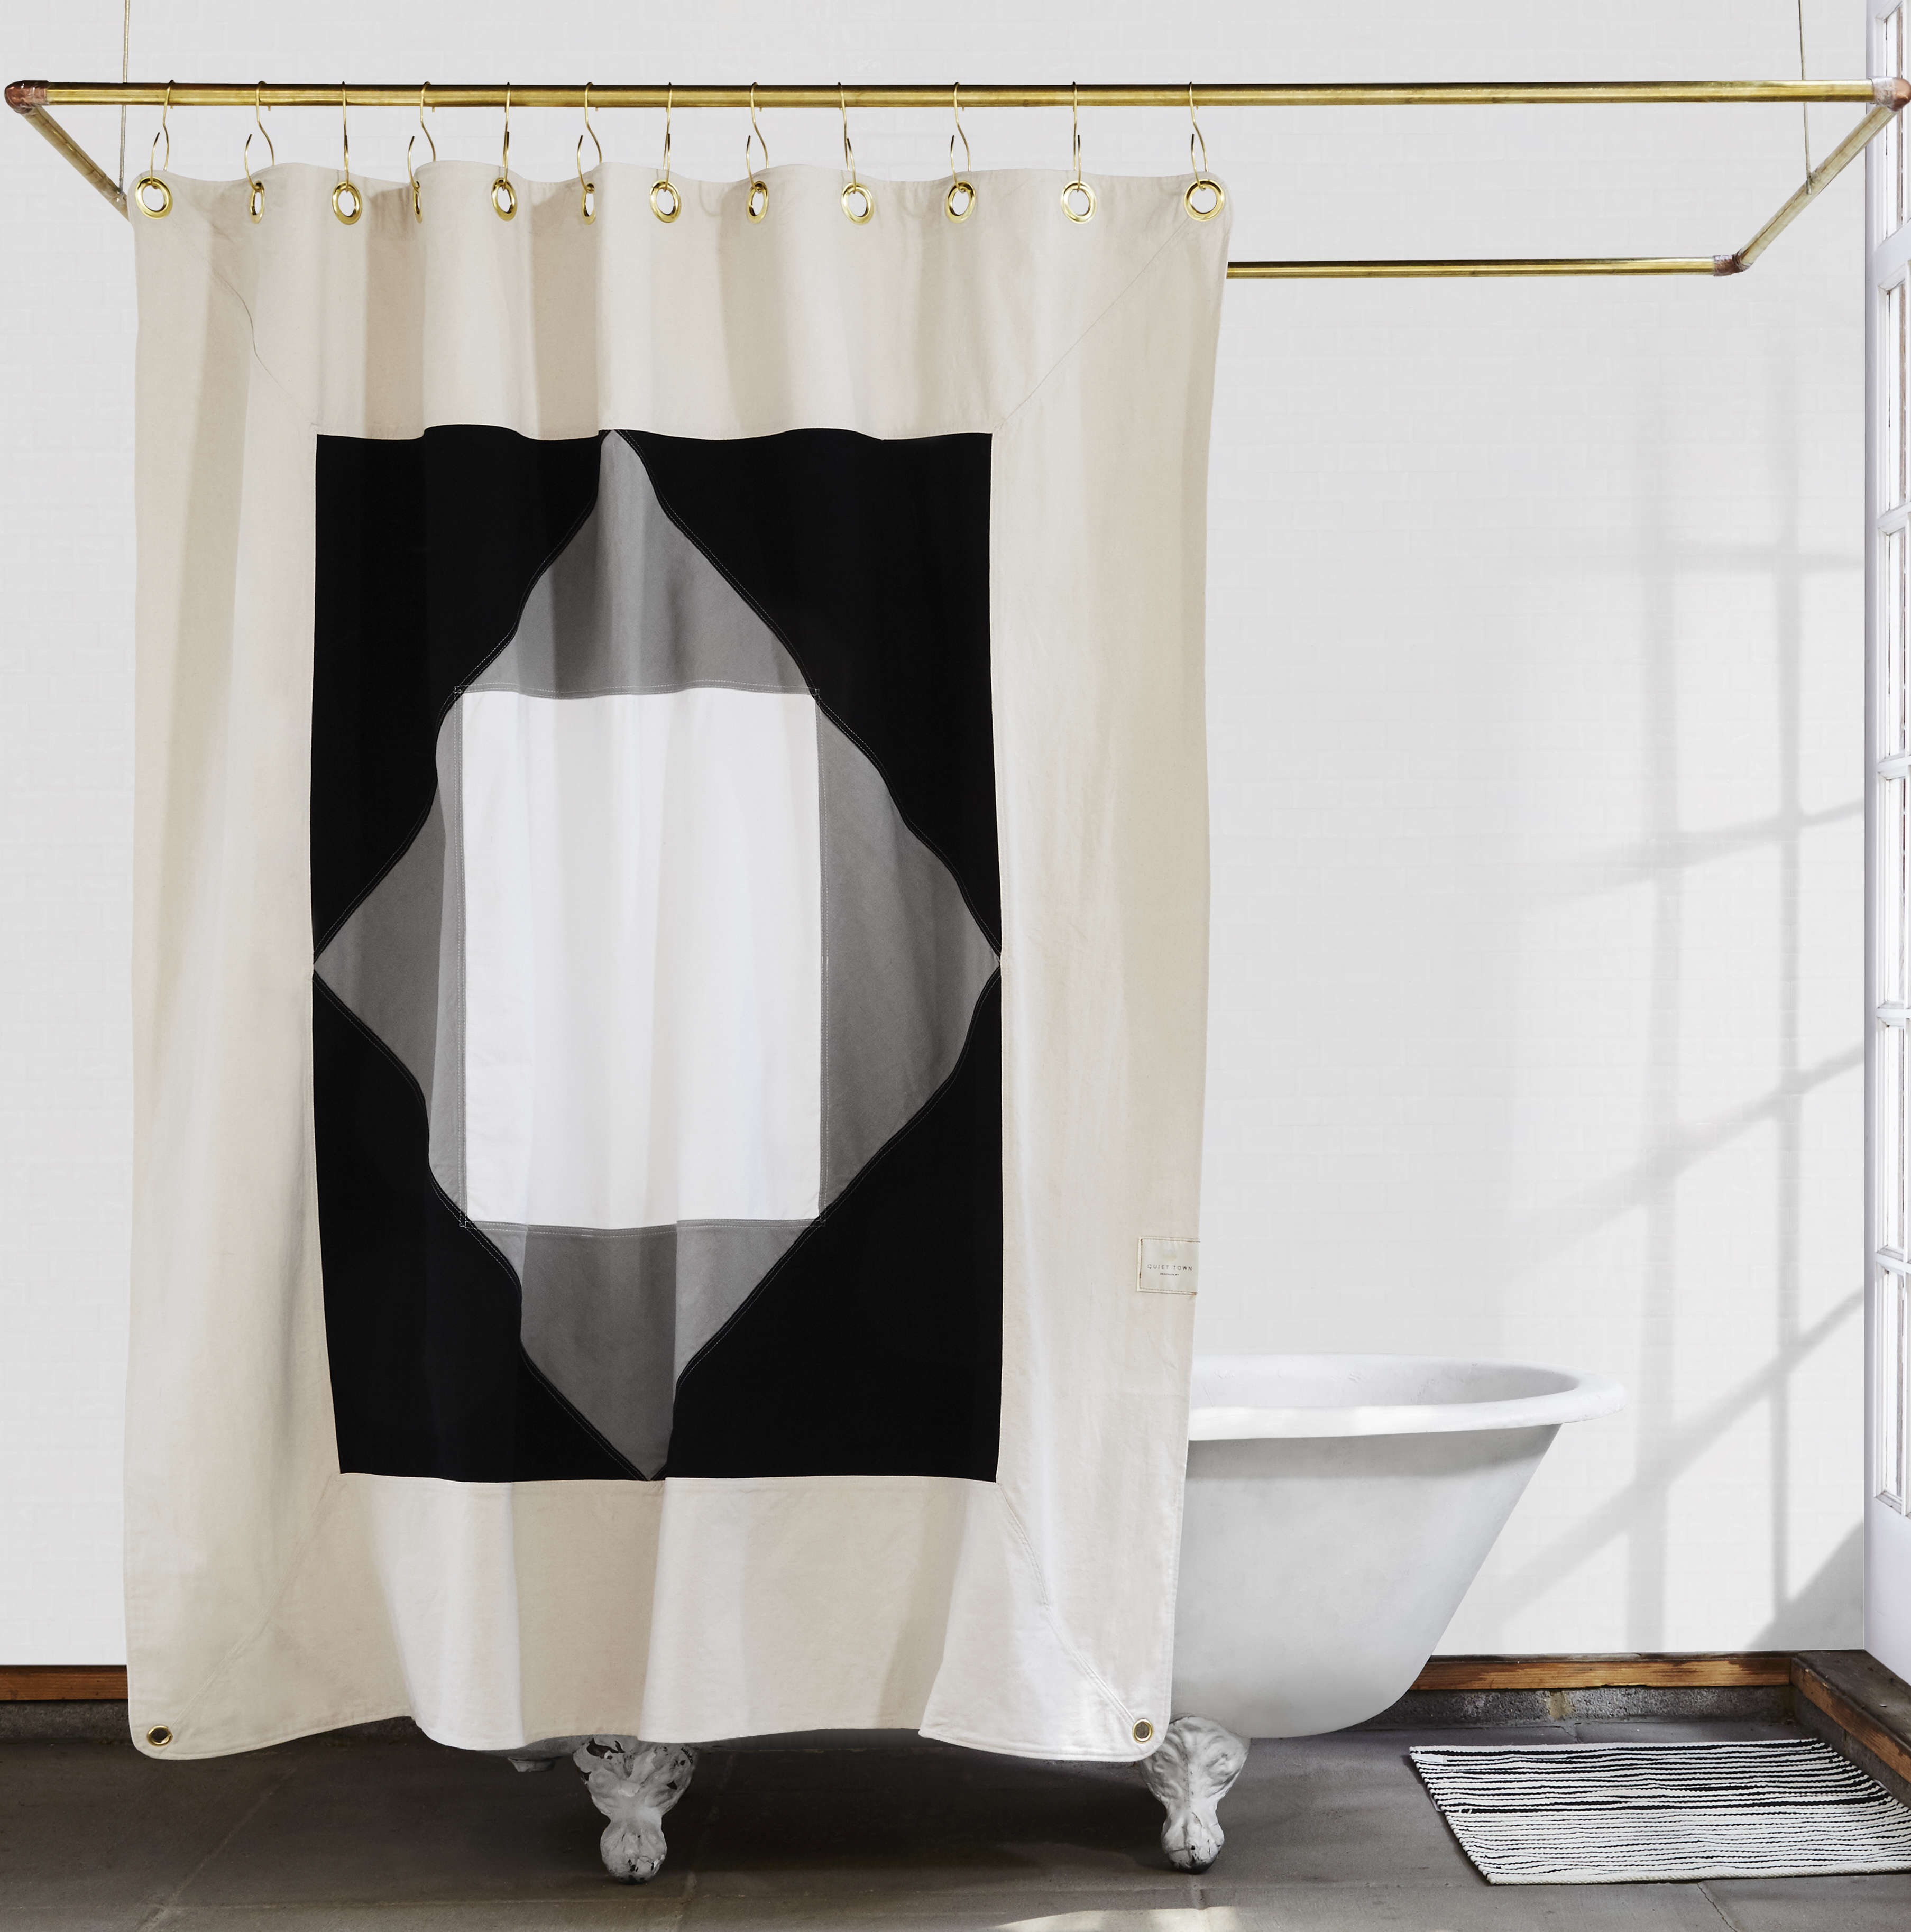 The Narlai Night Ride Organic Cotton Canvas Curtain